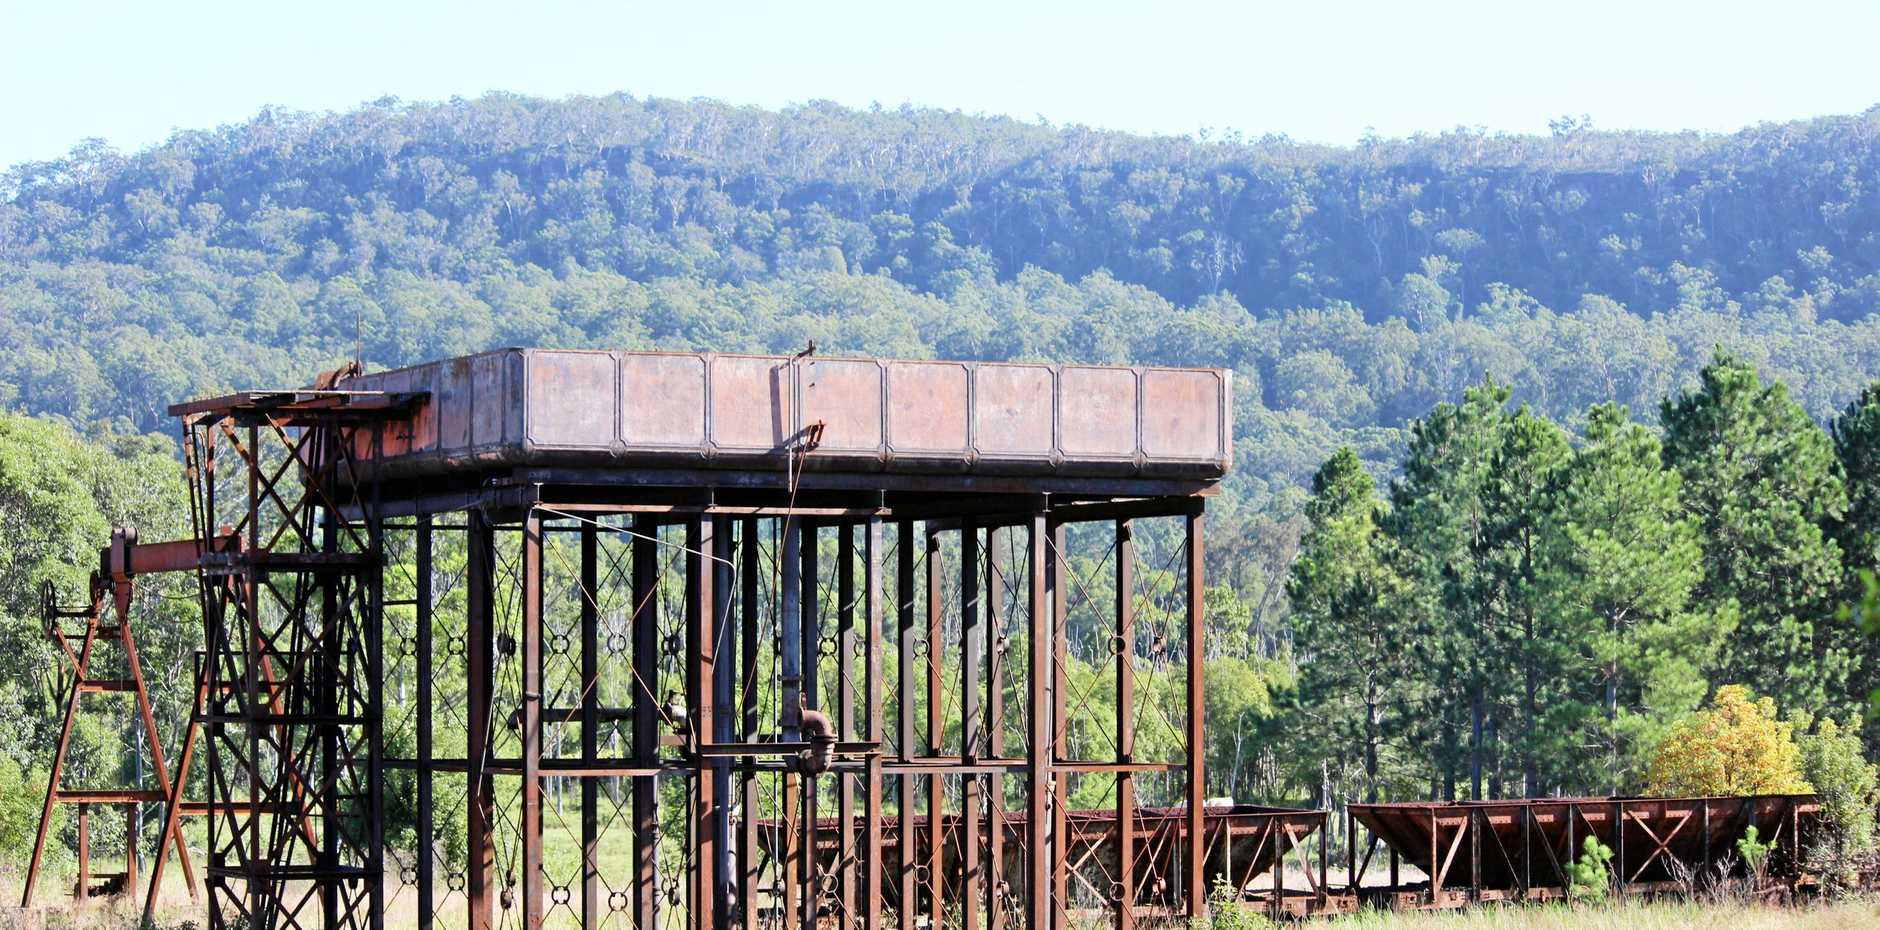 NO MORE: The water tower as it stood at the historic Glenreagh railway yard.